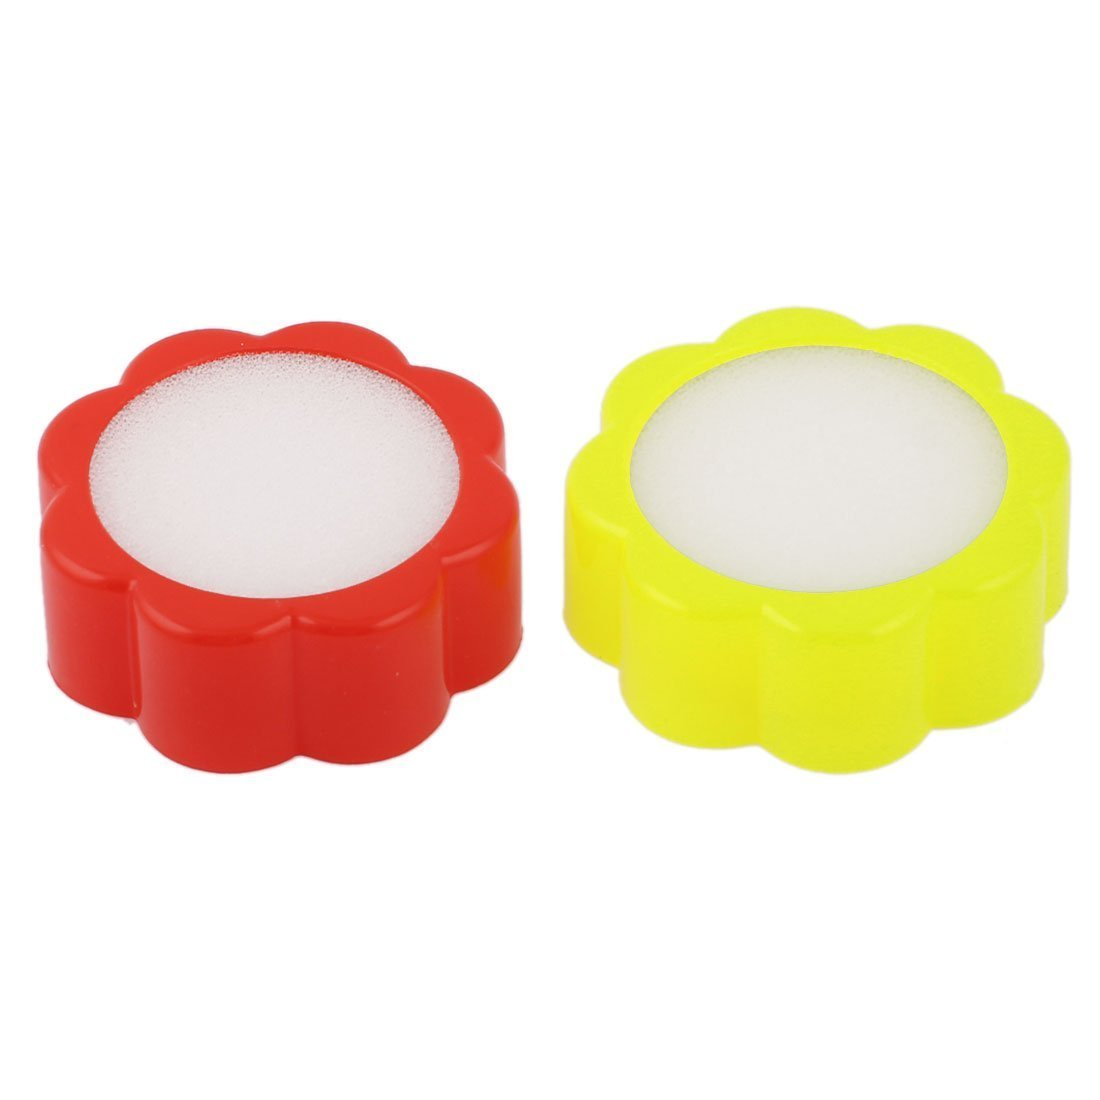 Home Mart Plastic Round Case Office Supply Sponge Finger Wet Tool 2pcs Red&Yellow by Home Mart (Image #1)